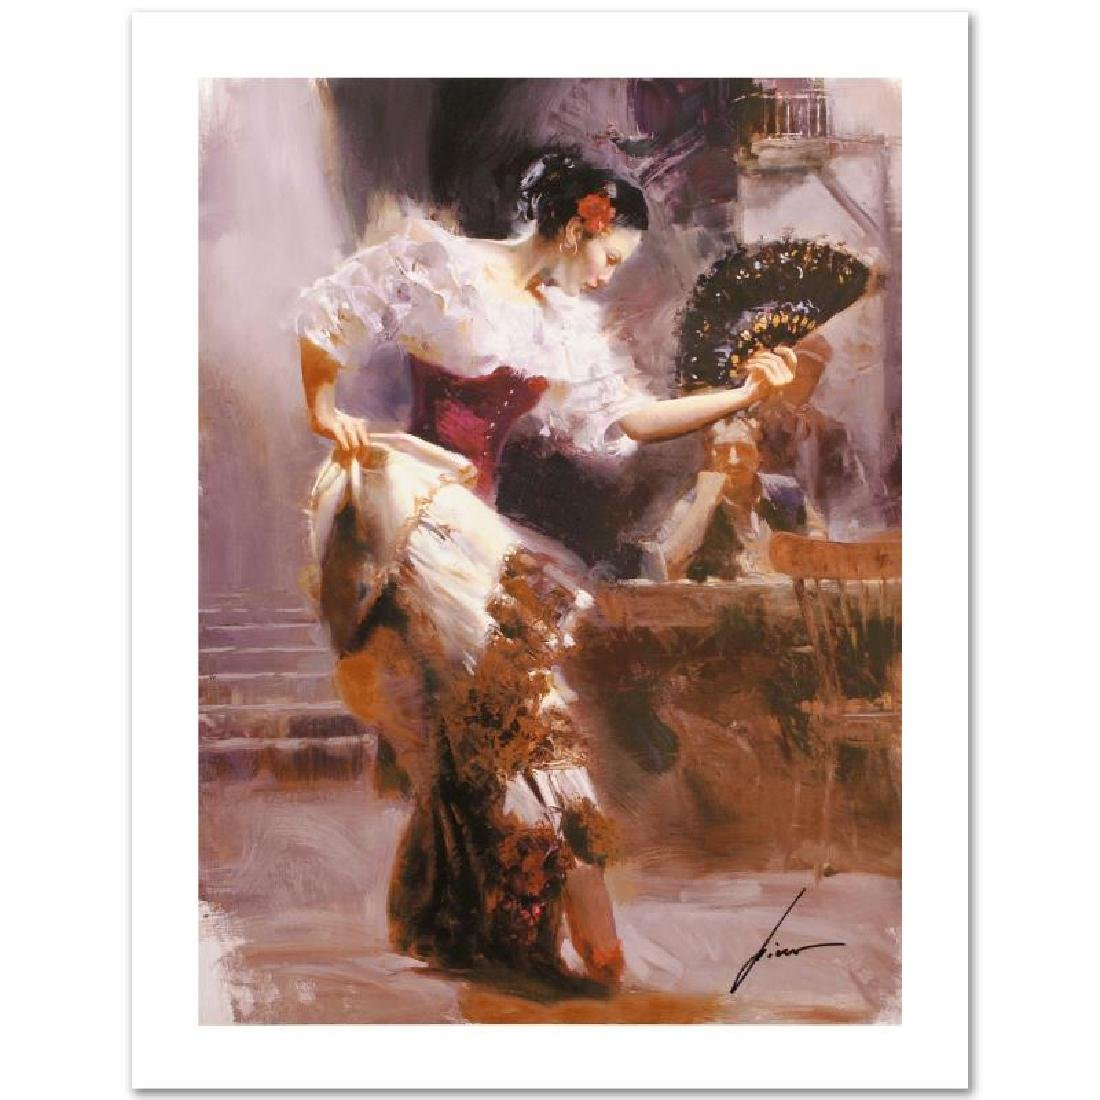 The Dancer by Pino (1939-2010)